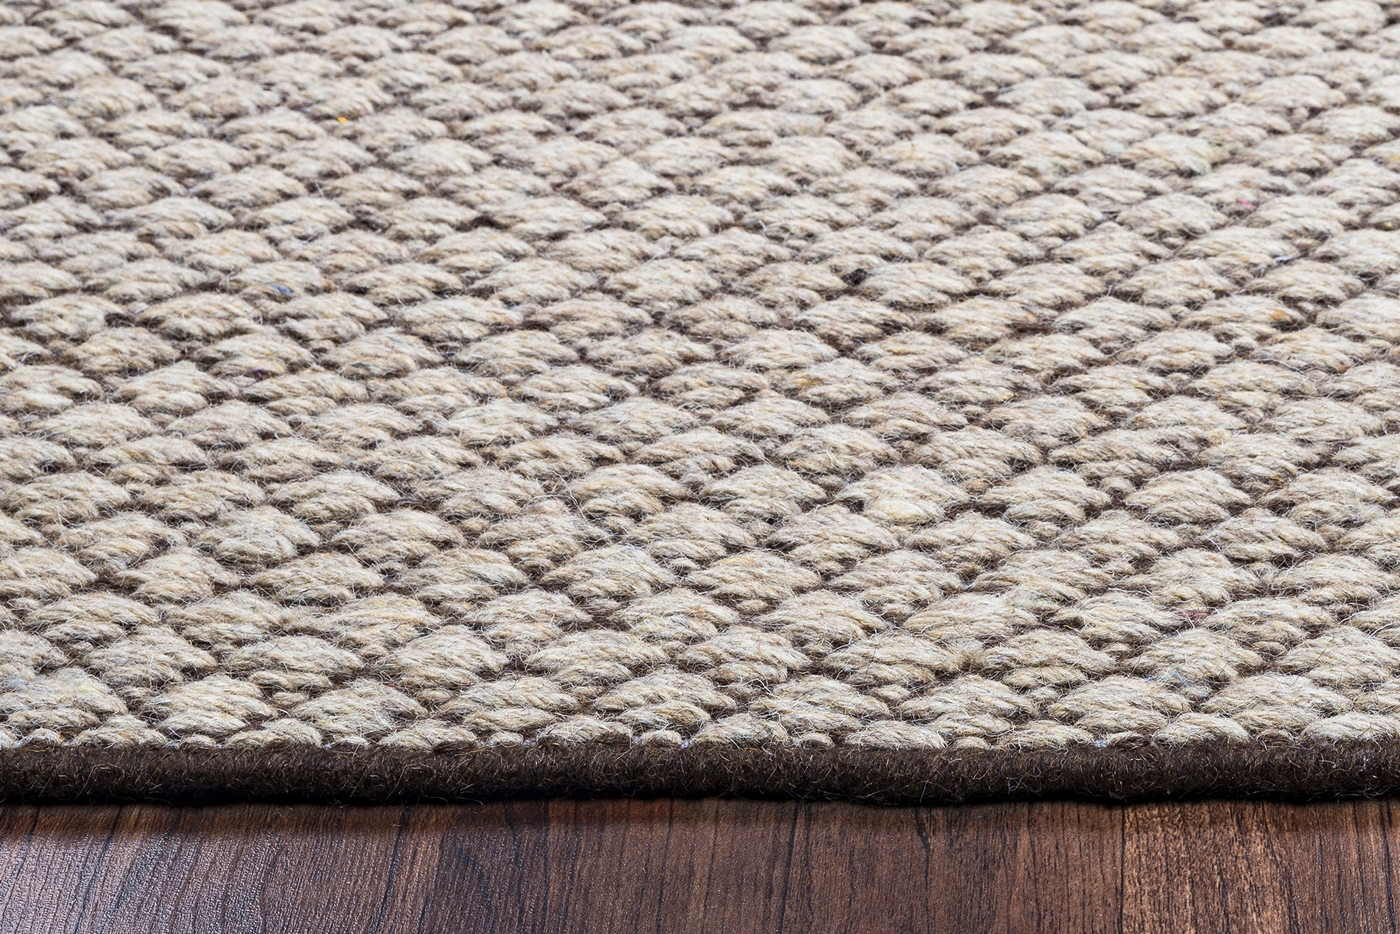 Woven Wool Rug Twist Textured Woven Pattern Wool Area Rug In Gray And Off